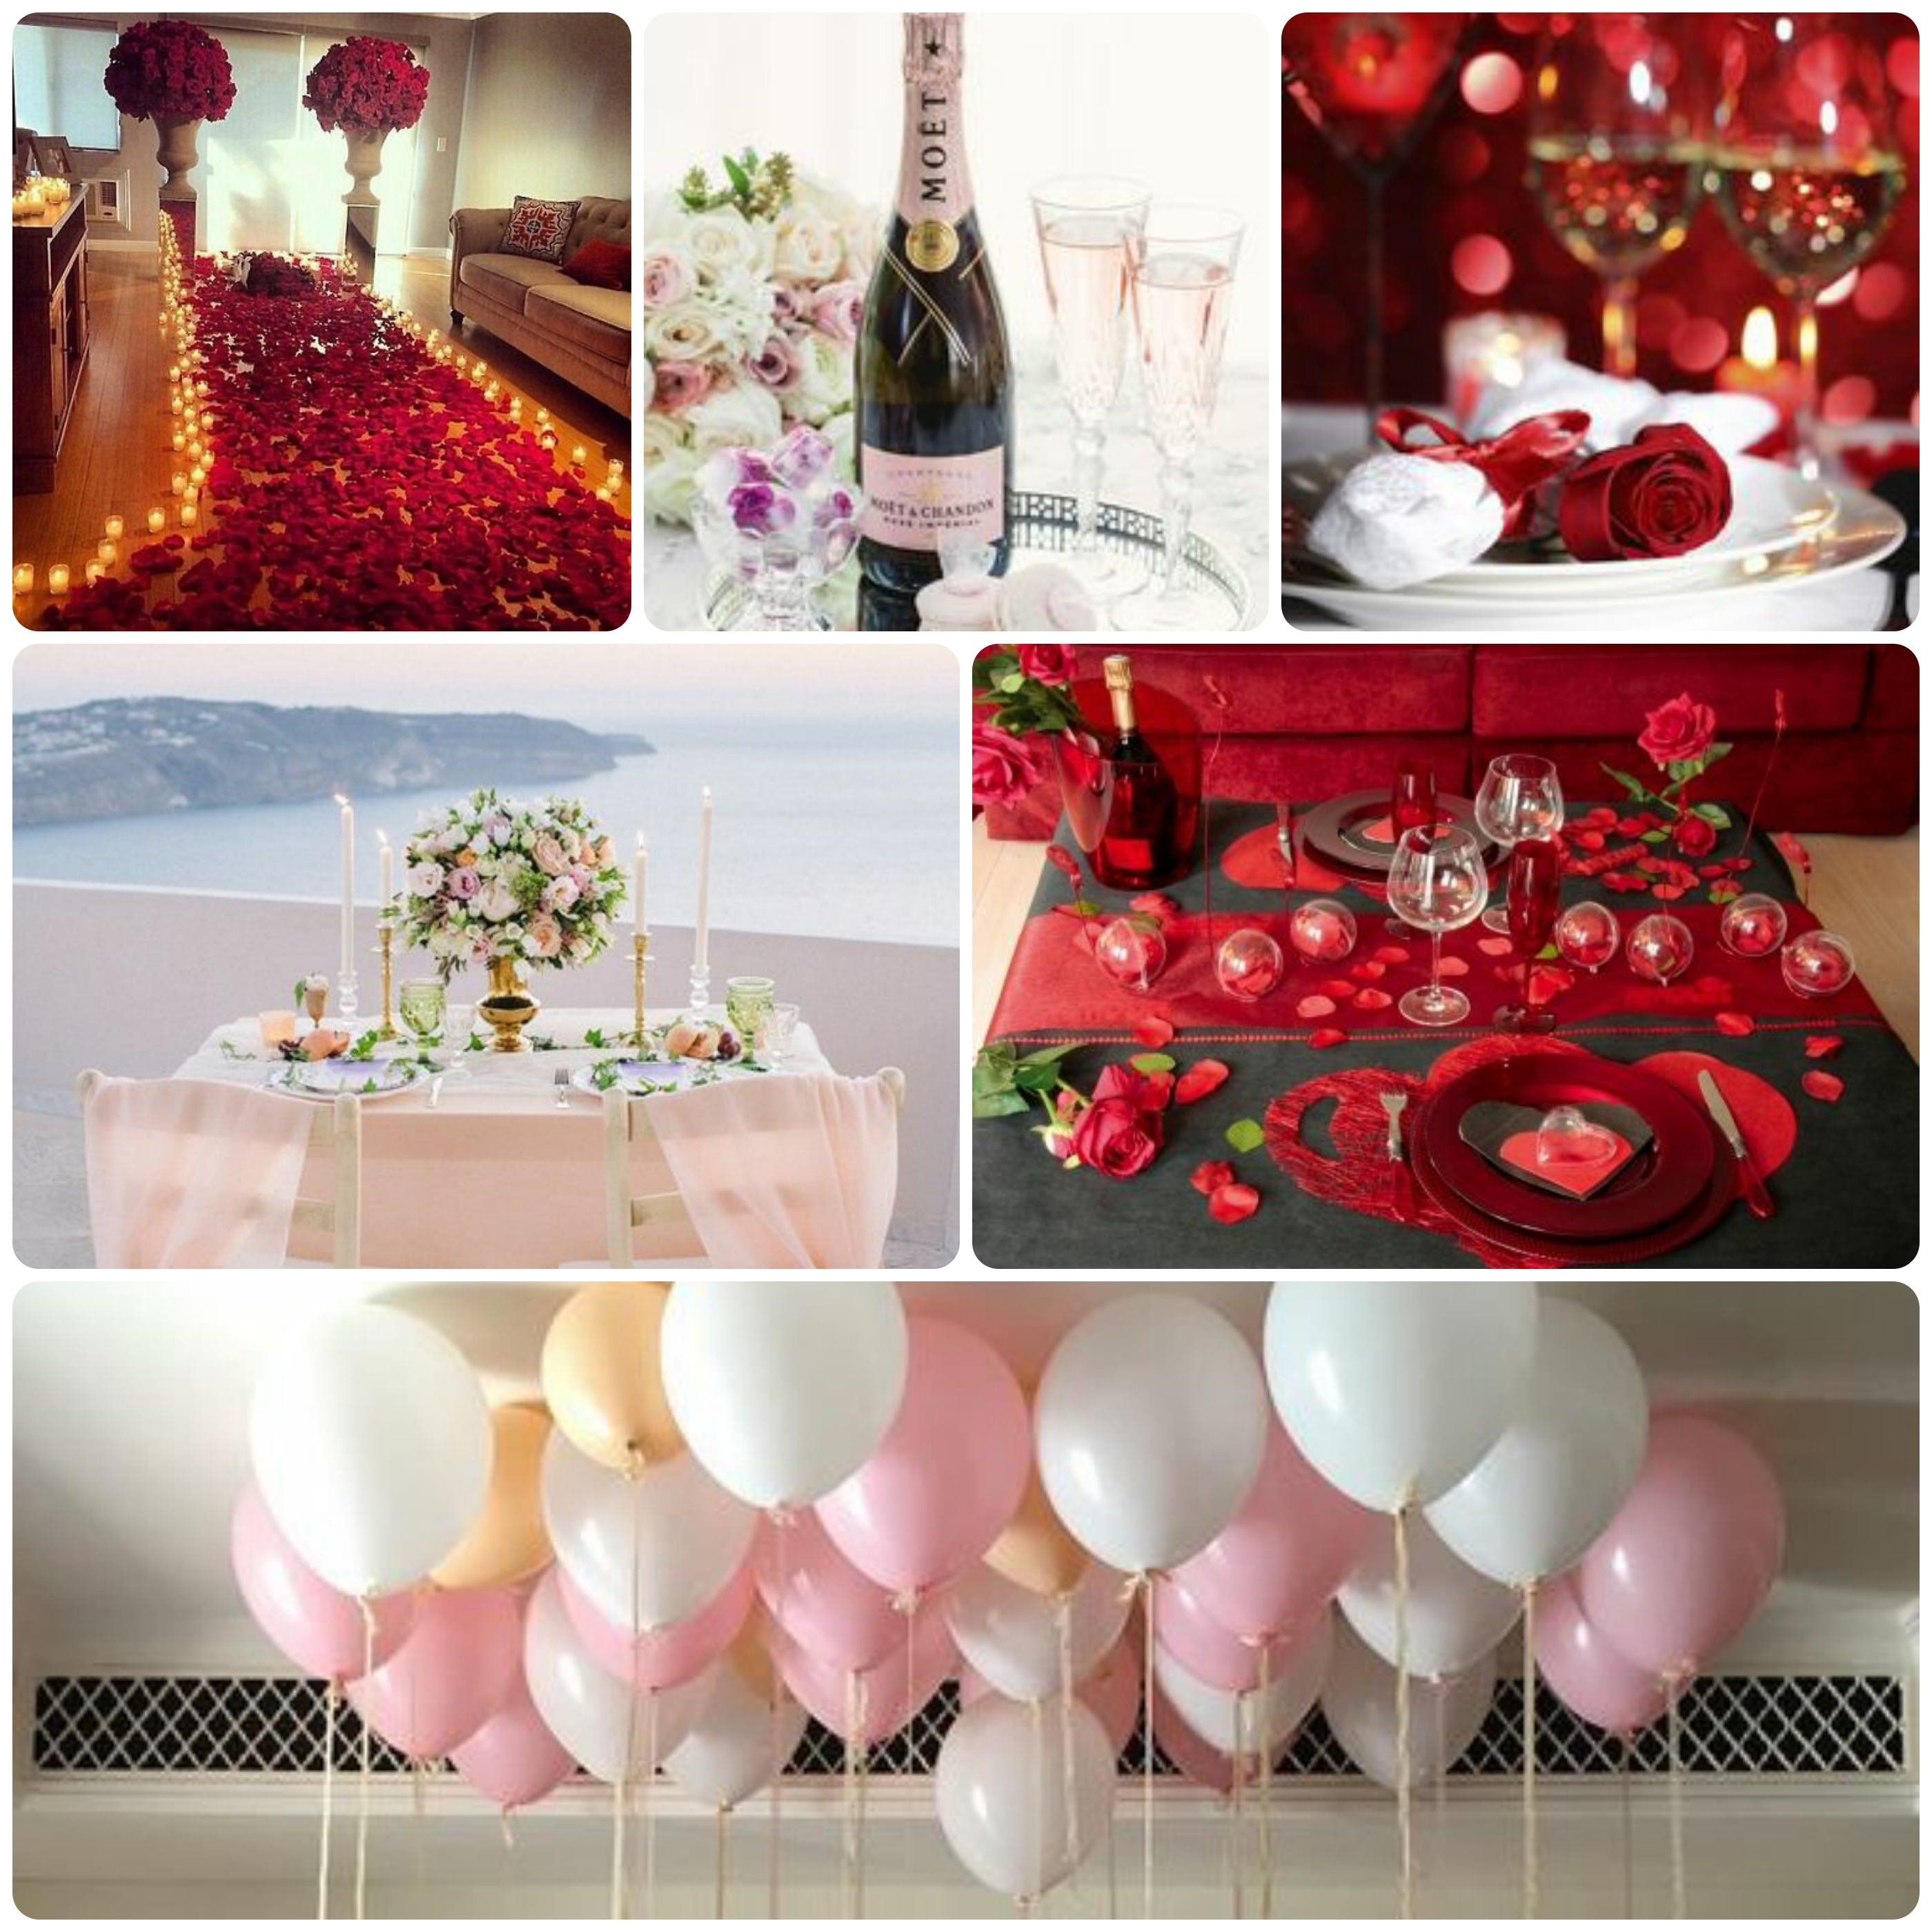 How to organize a surprise on Valentines Day